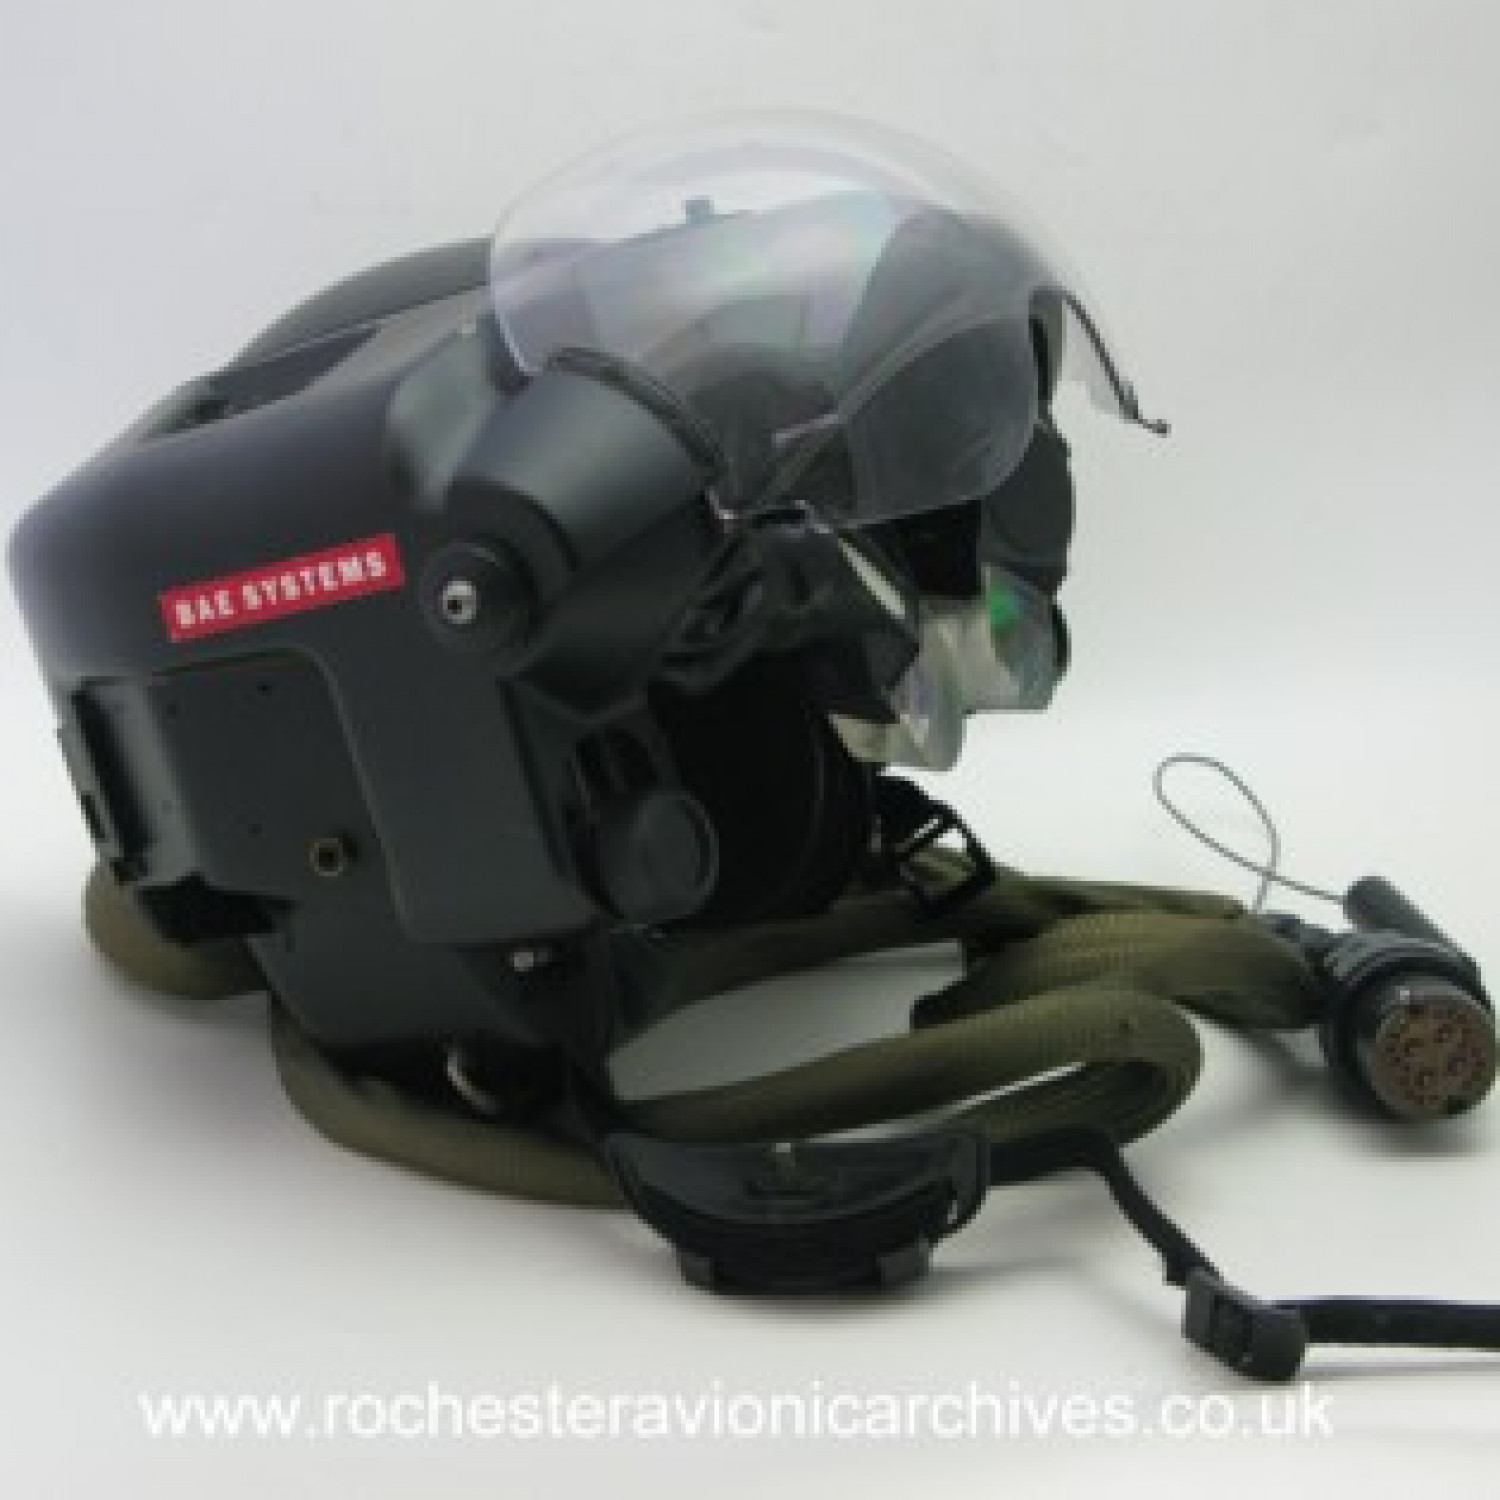 Integrated Helmet Unit (IHU)